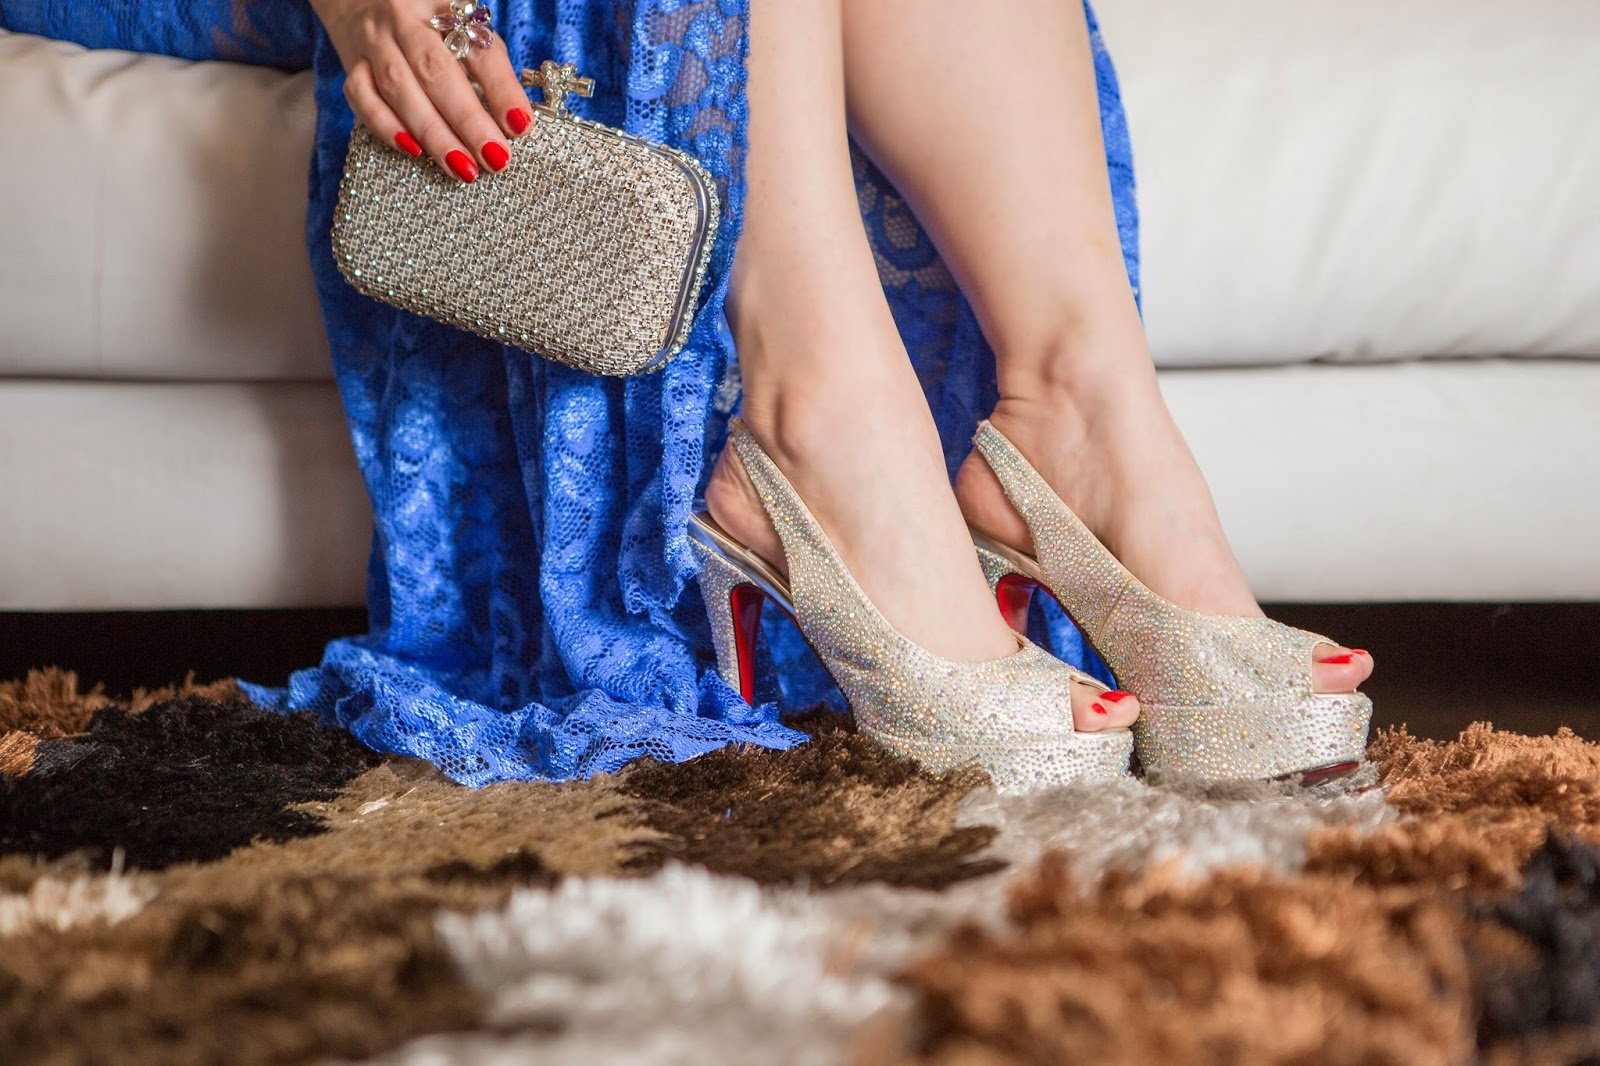 Christian Louboutin Crystal Studded Heels & Crystal Embellished Clutch